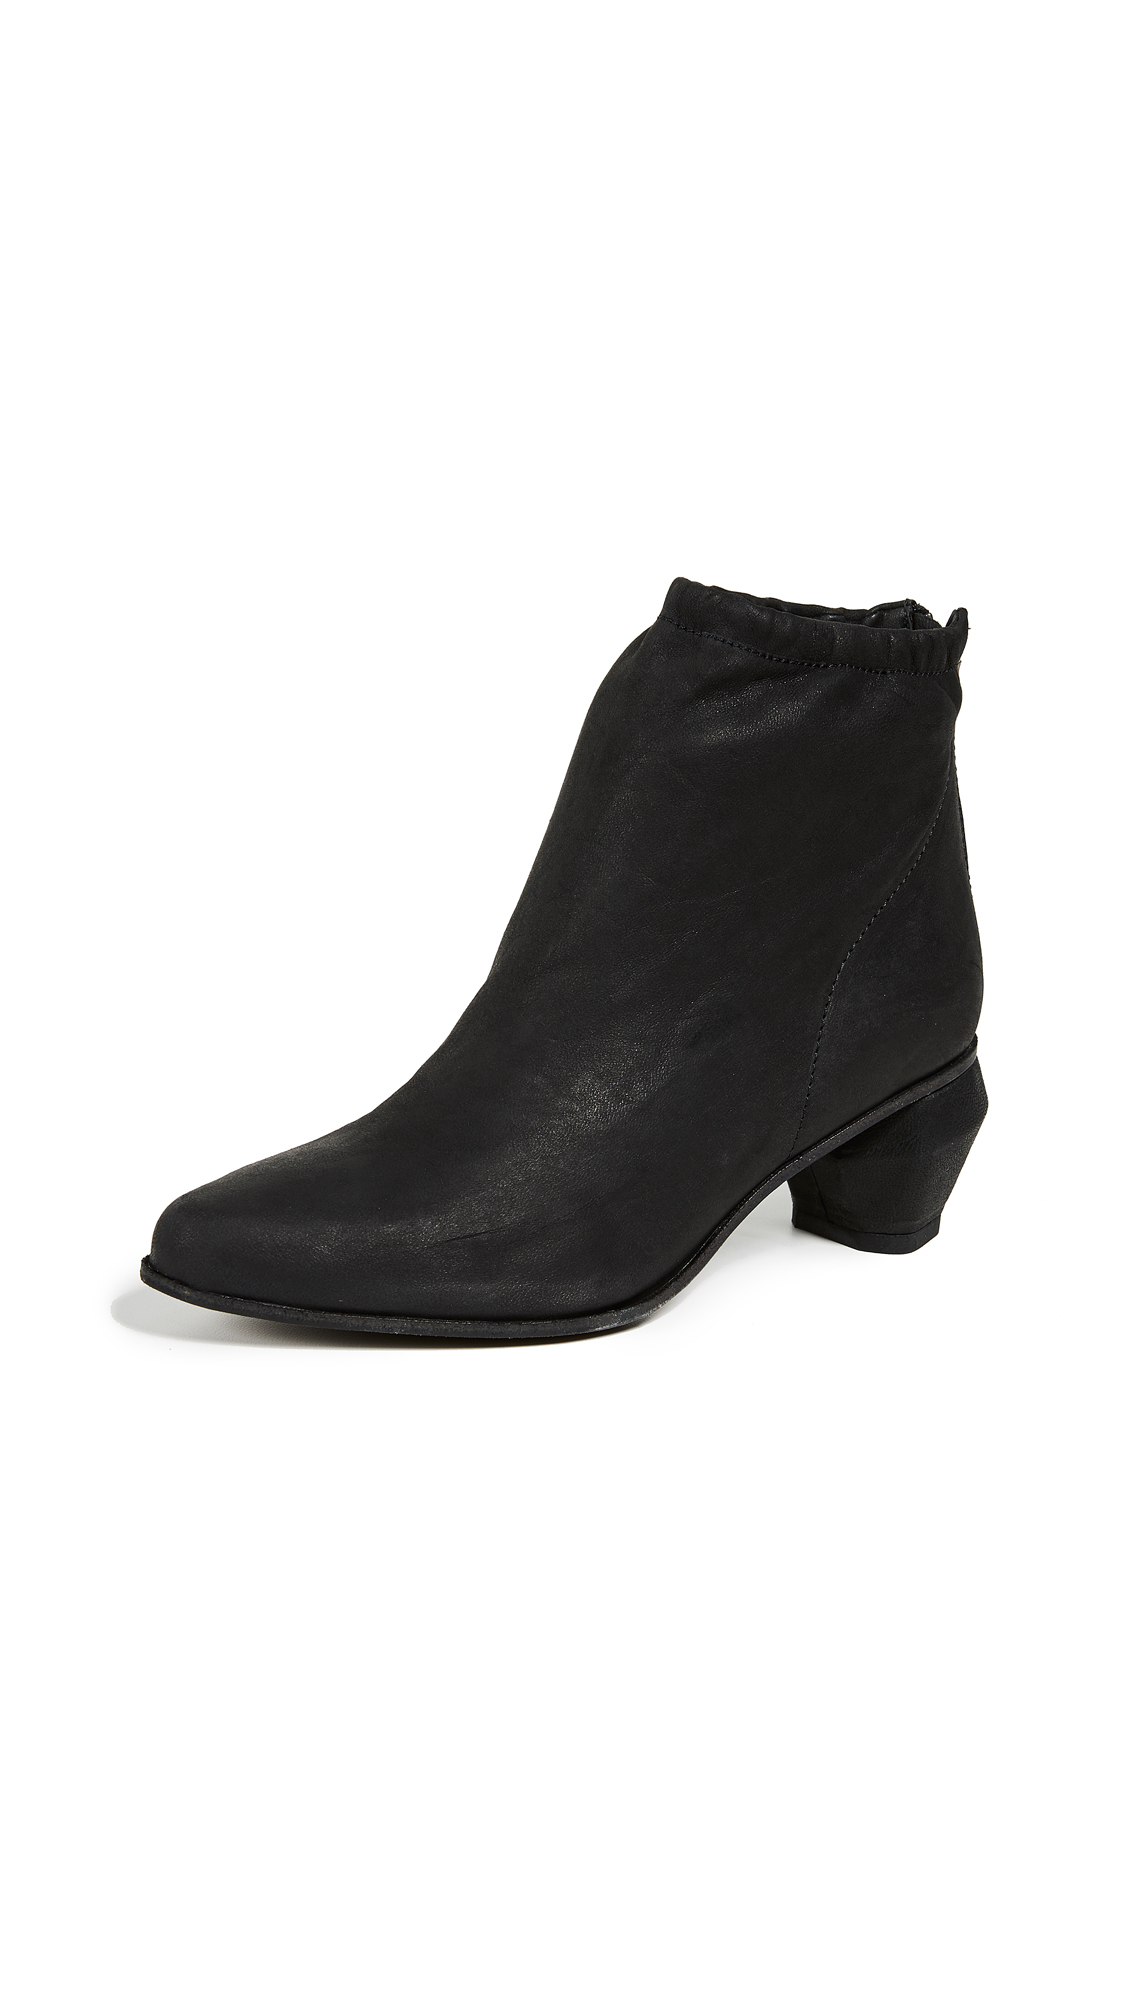 LD Tuttle The Burn Ankle Boots - Black